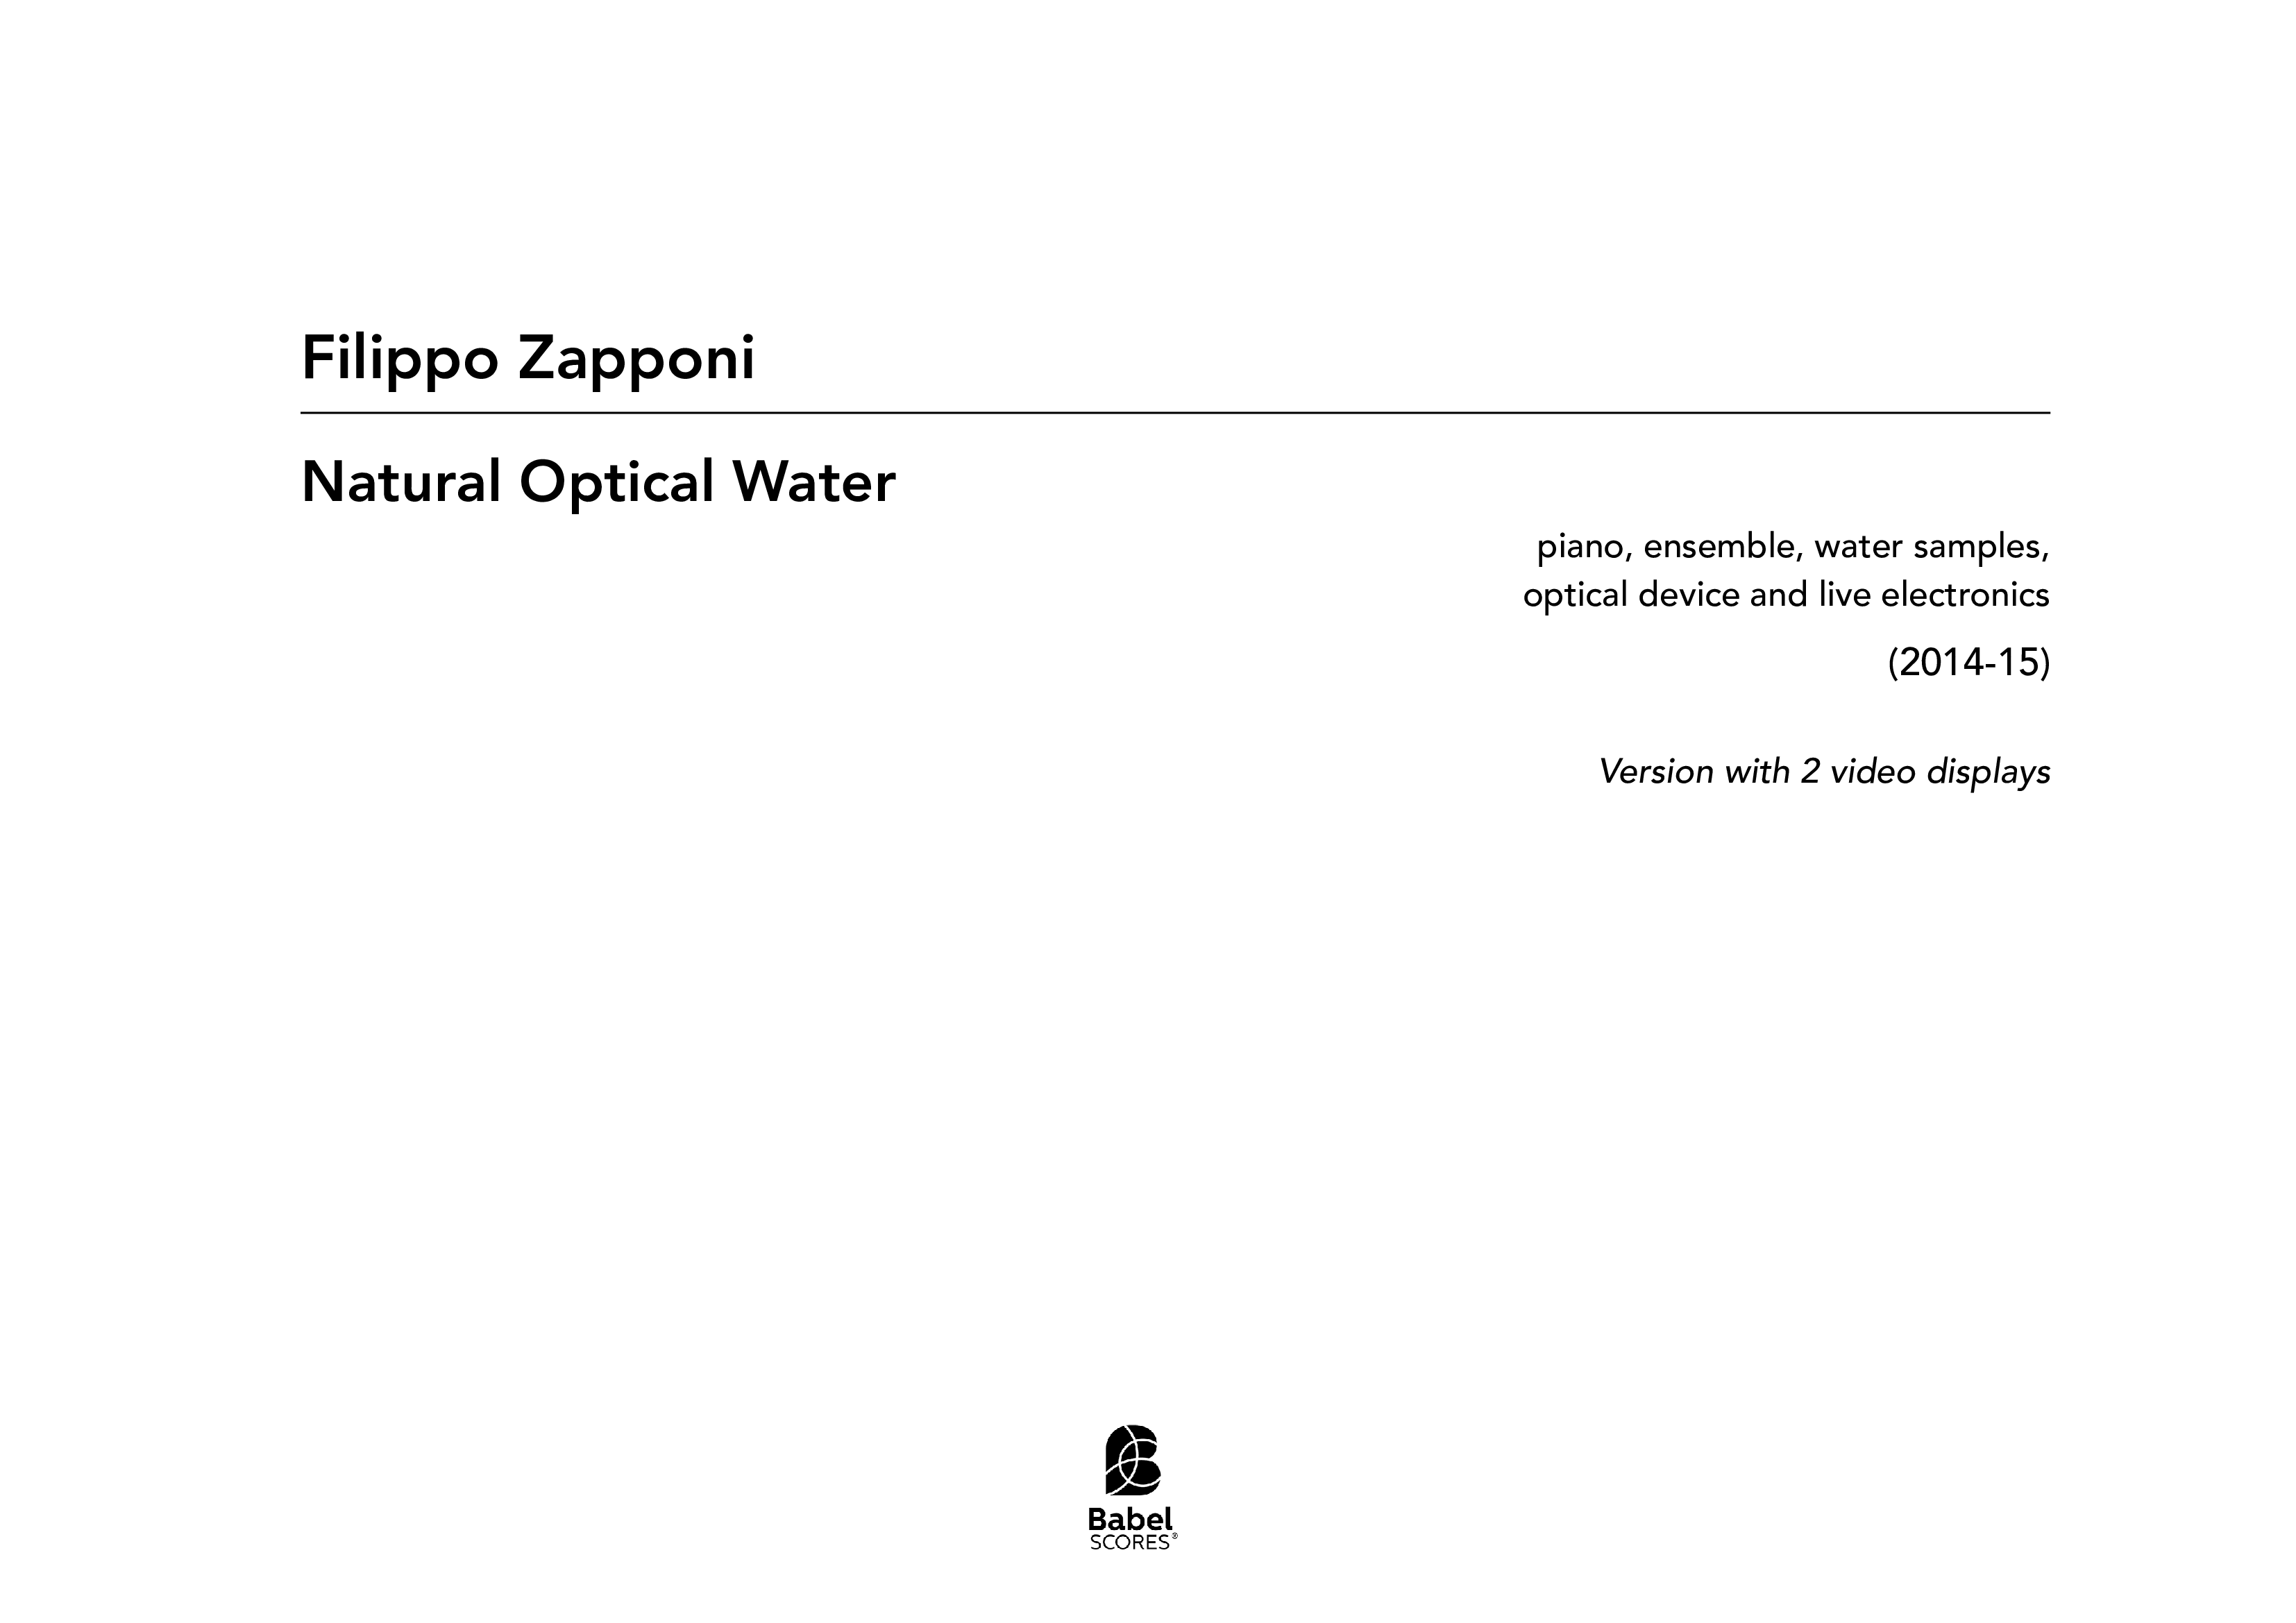 Natural Optical Water A3 z 3 90 1 105